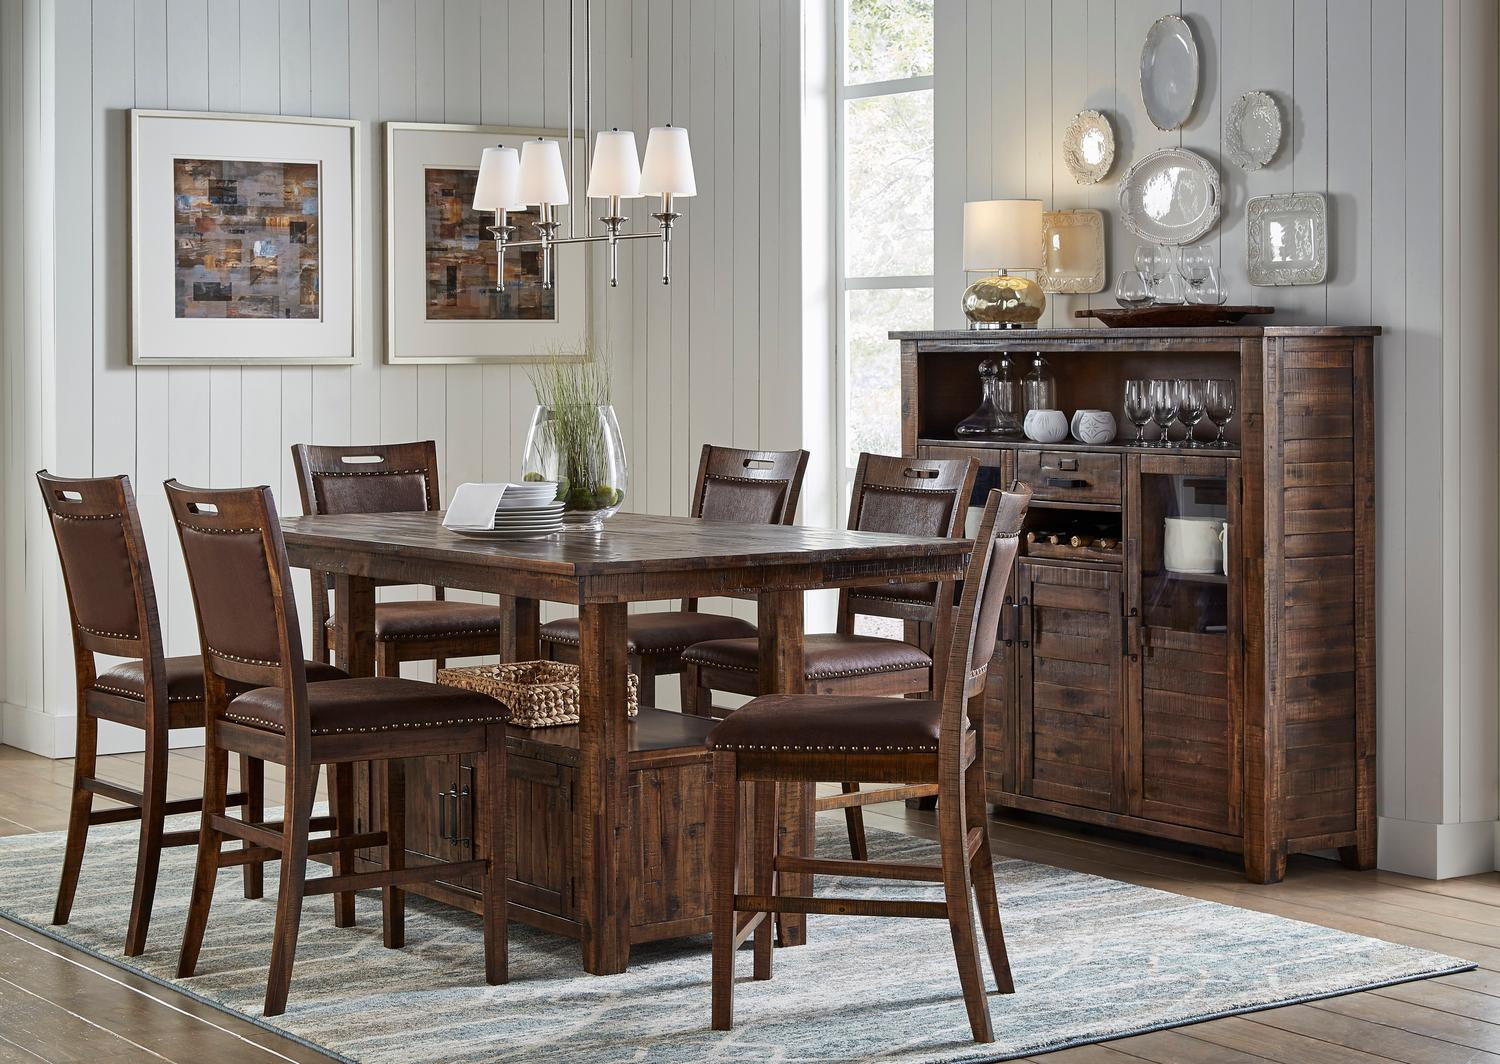 JofranCannon Valley High/low Table W/(6) Stools